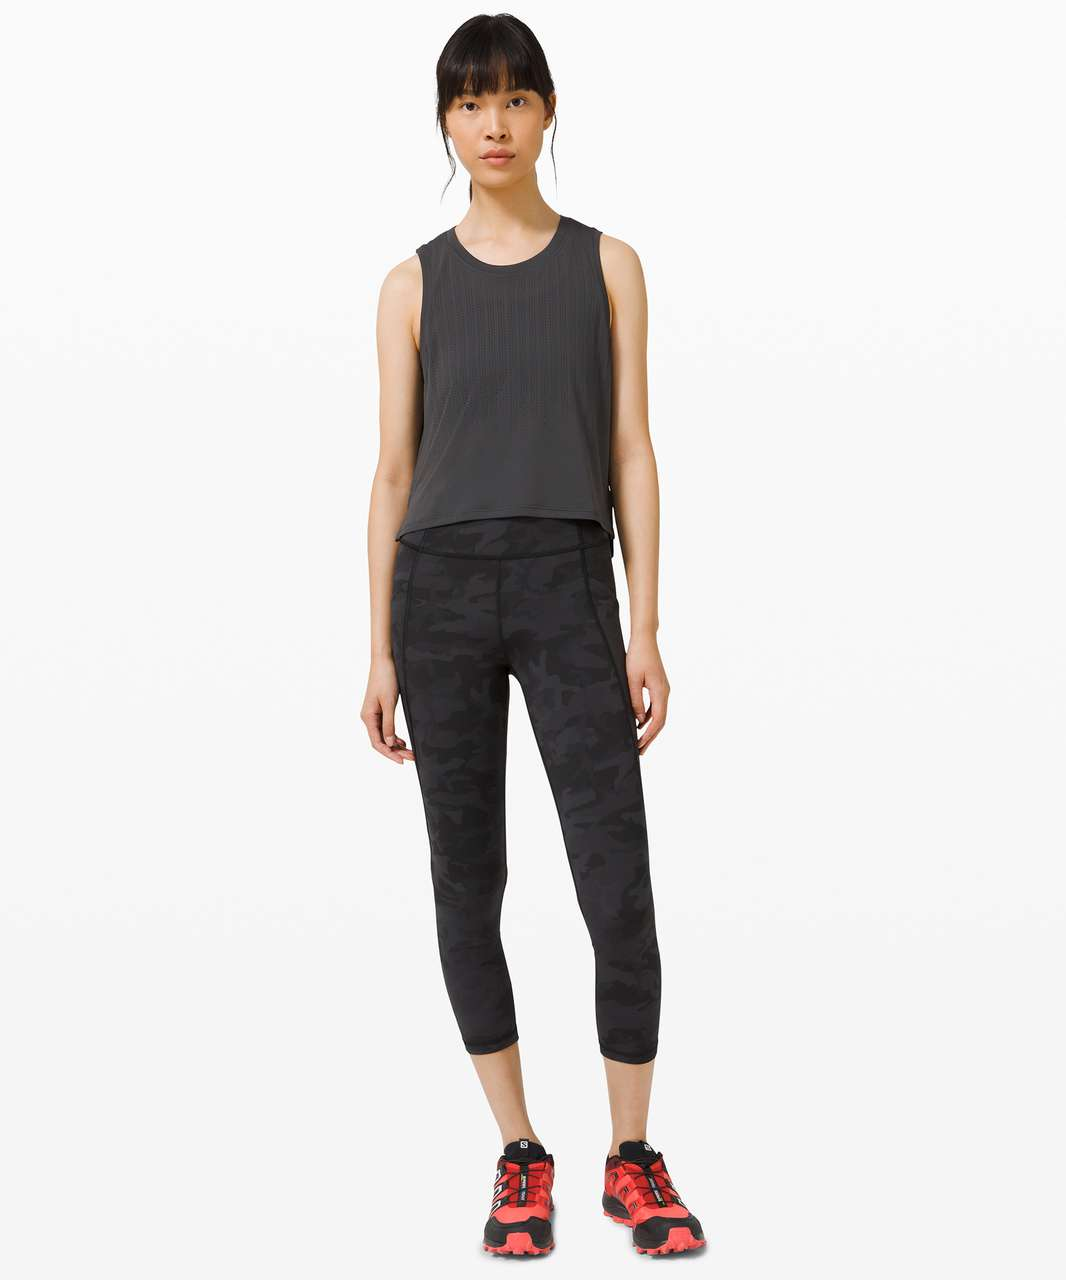 """Lululemon Time To Sweat Crop 23"""" - Incognito Camo Multi Grey"""